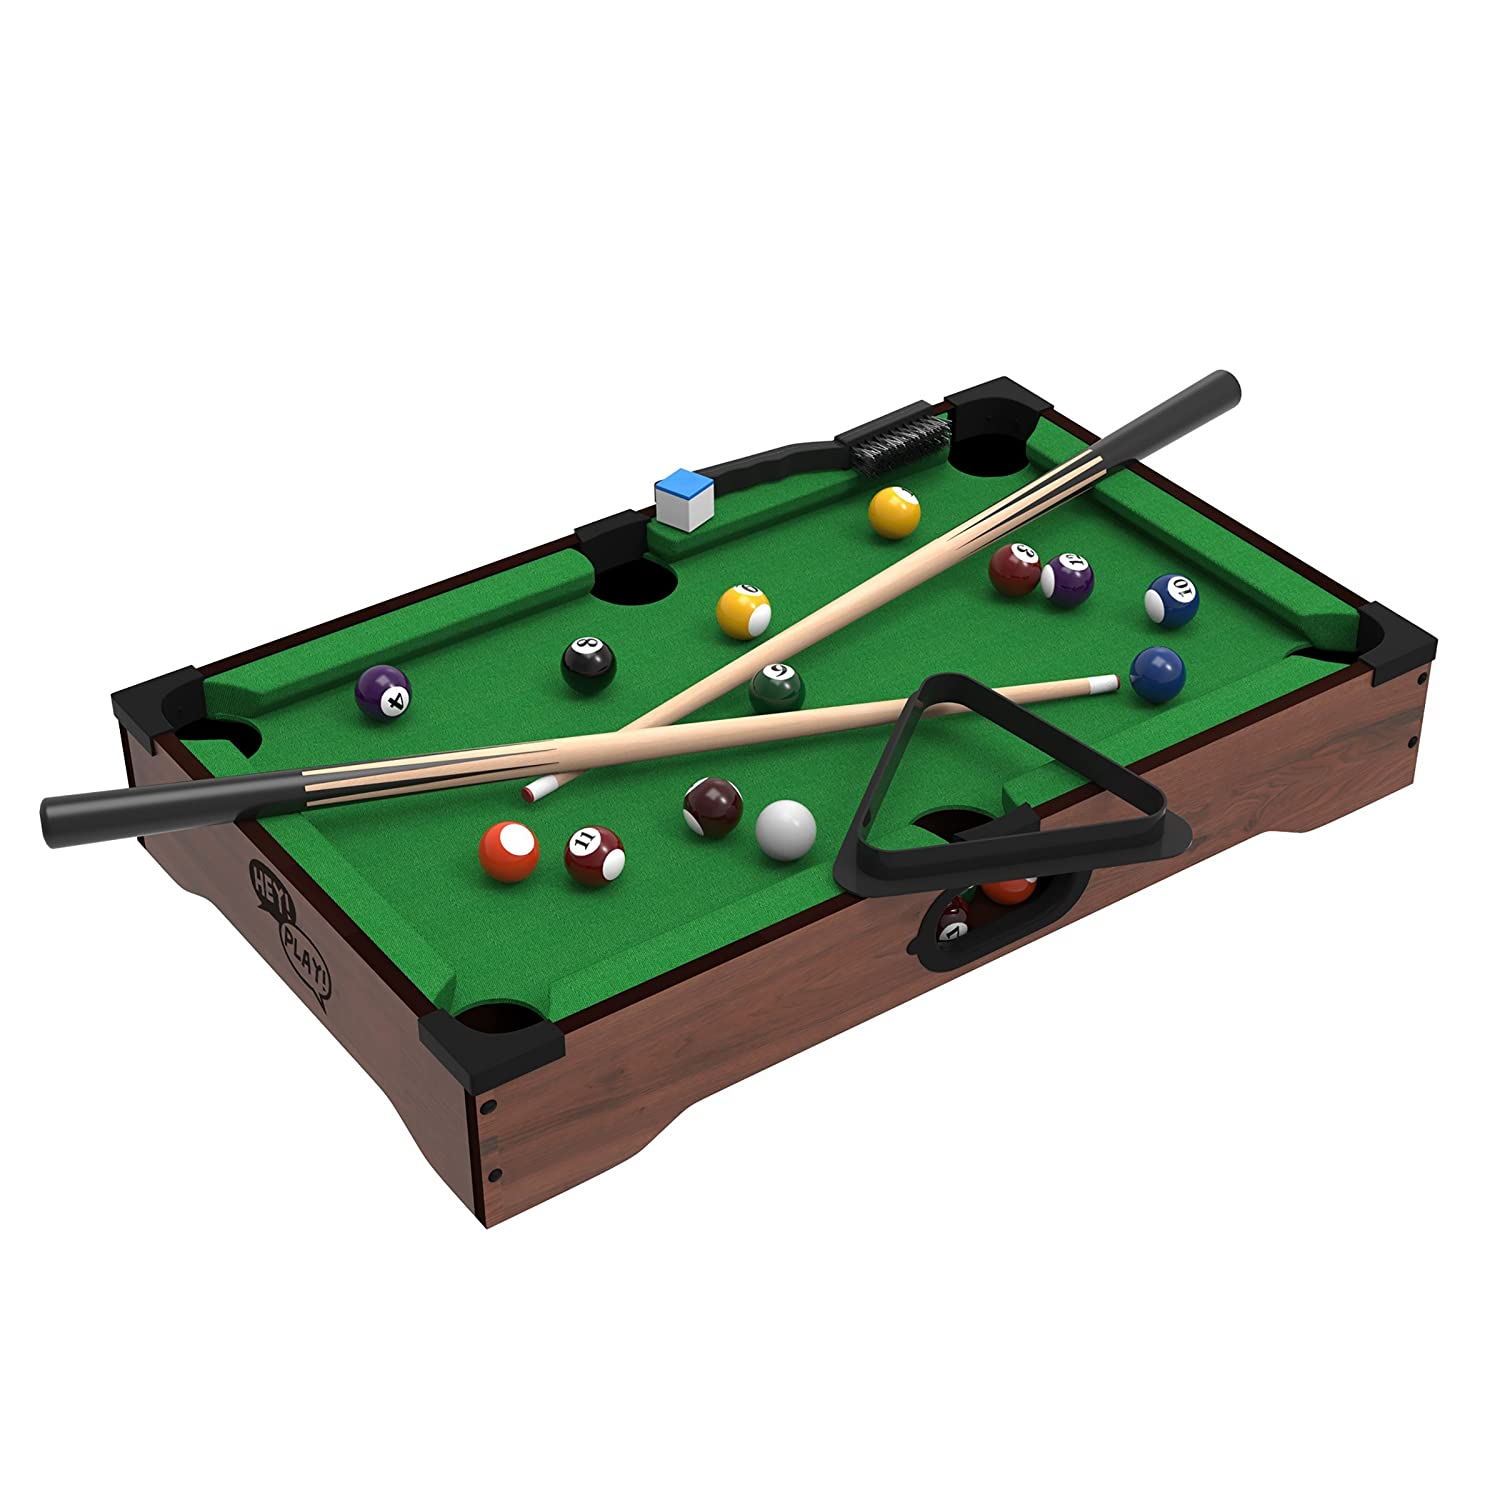 Mini Tabletop Pool Set- Billiards Game Includes Game Balls, Sticks, Chalk, Brush and Triangle